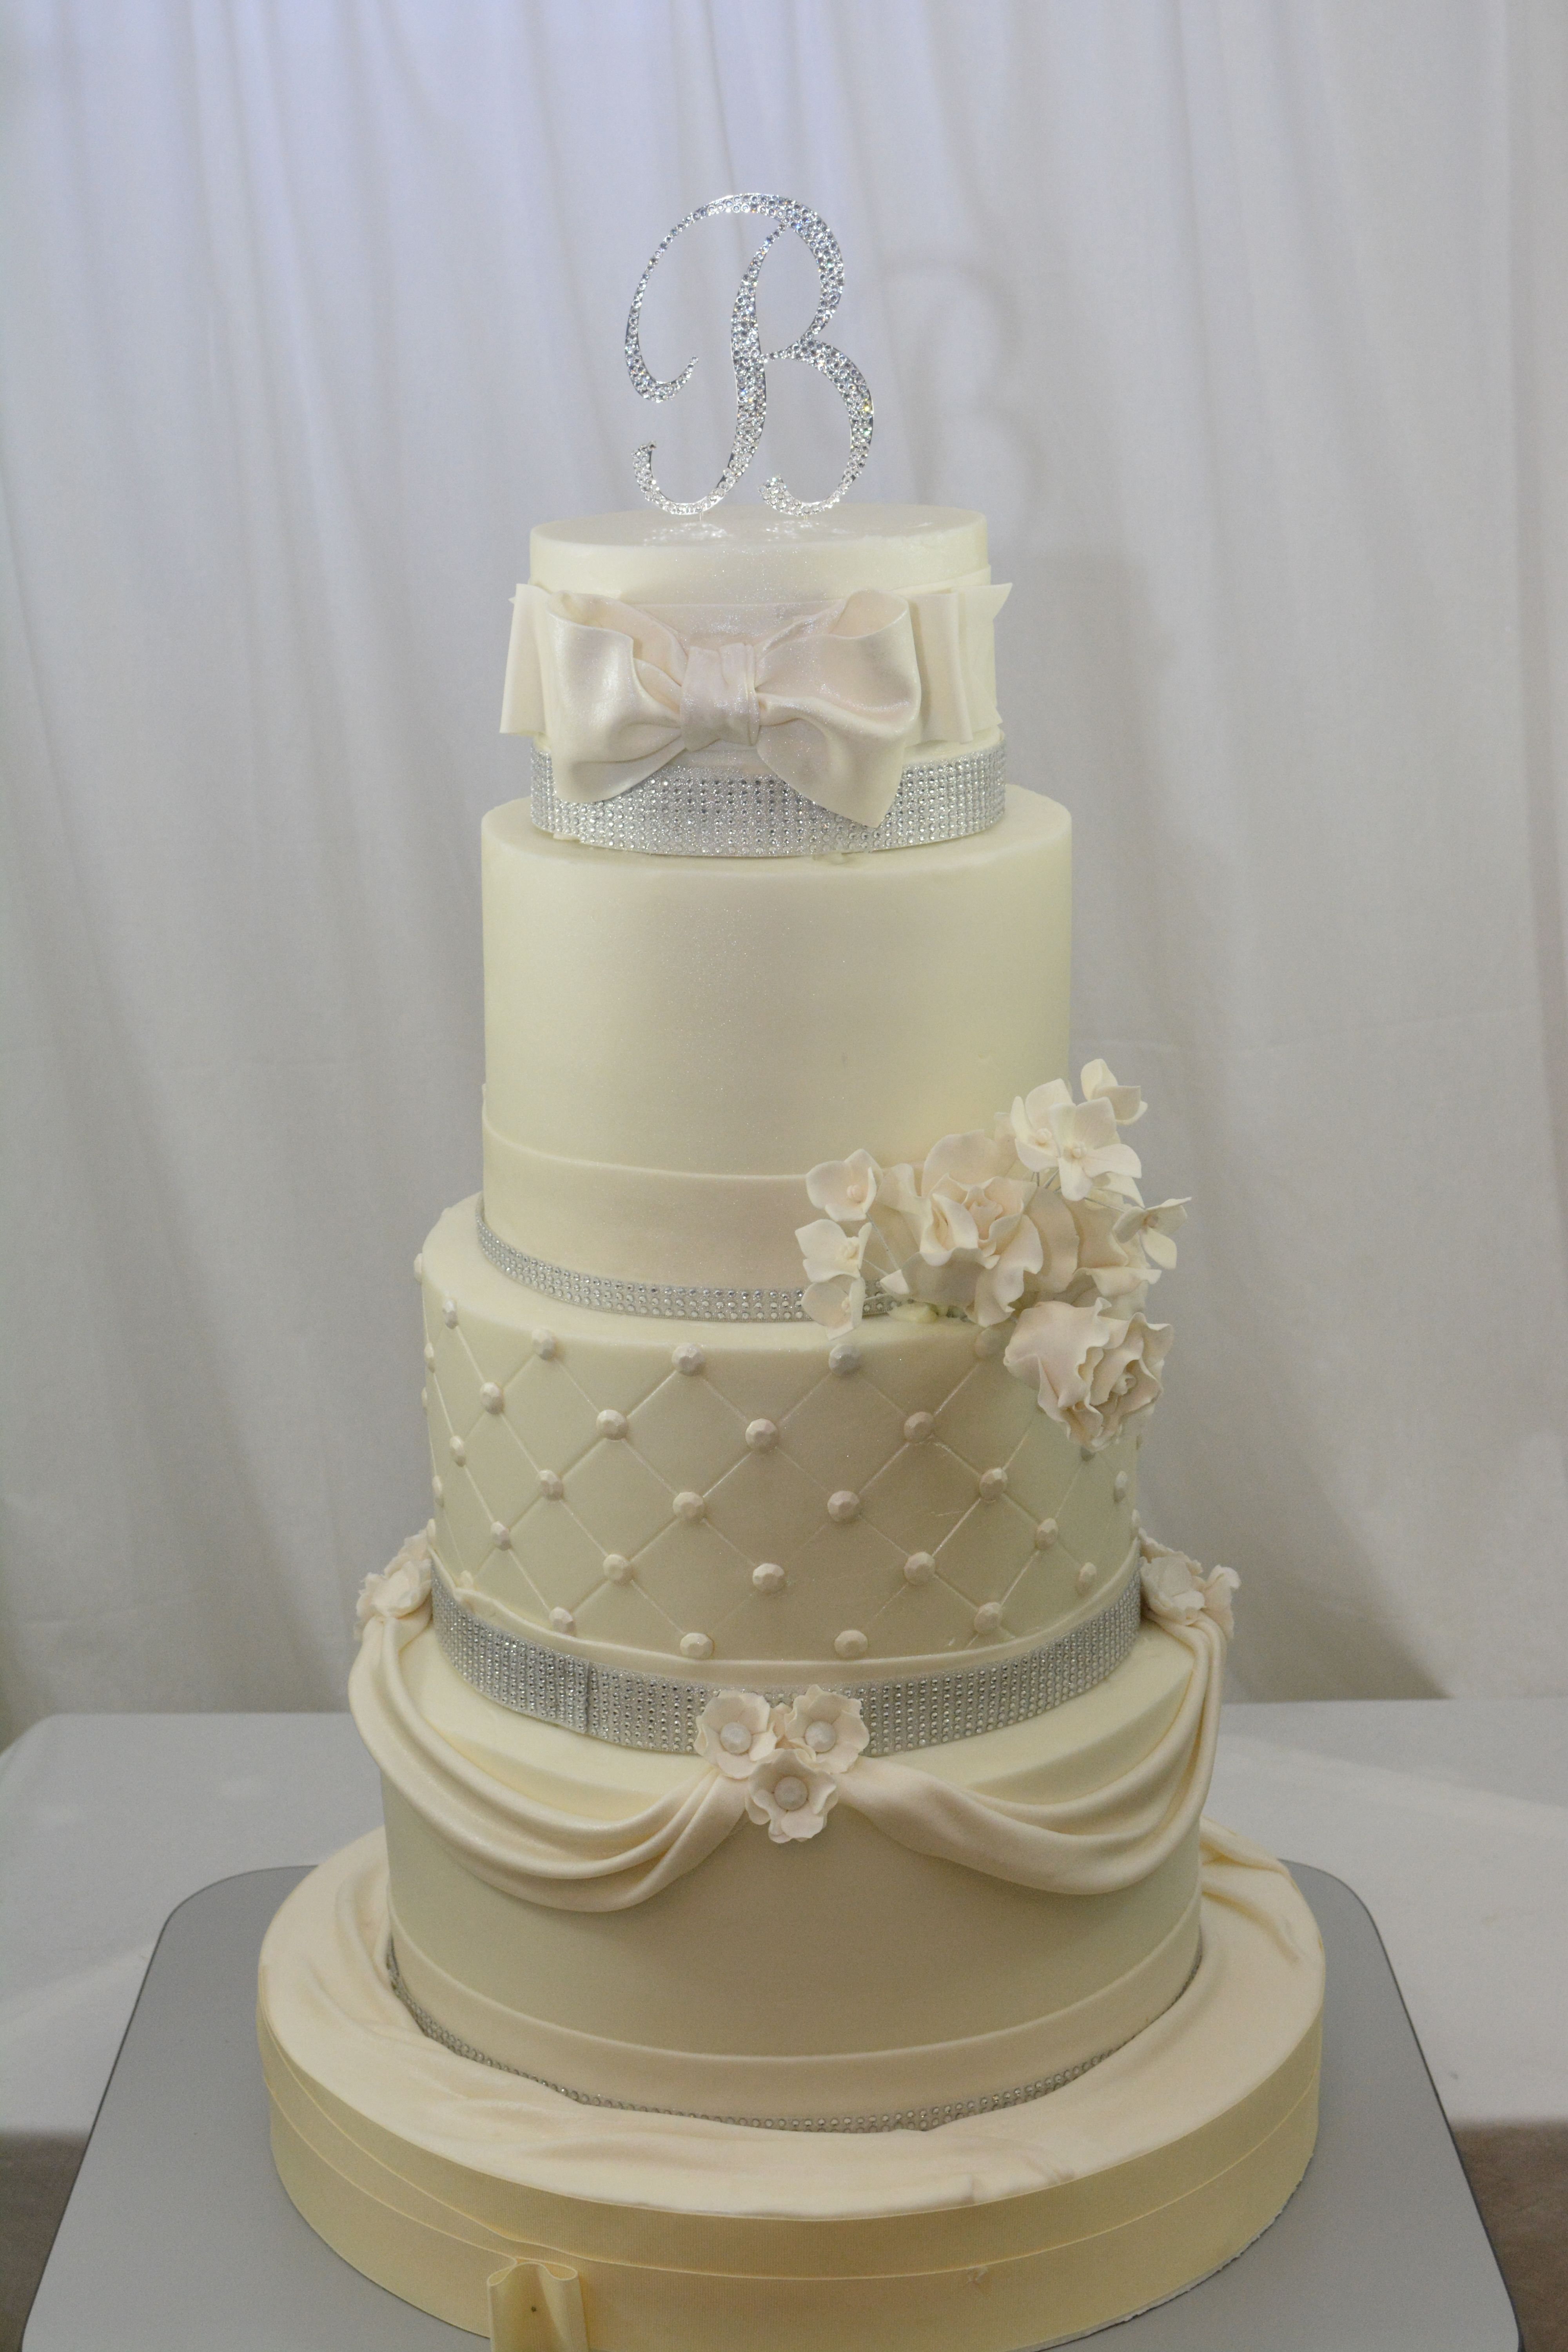 This Was A Very Large Cake Too Large To Move In To A Good Spot For Taking Pictures Fin Christmas Wedding Cakes Fondant Wedding Cakes Seminaked Wedding Cake